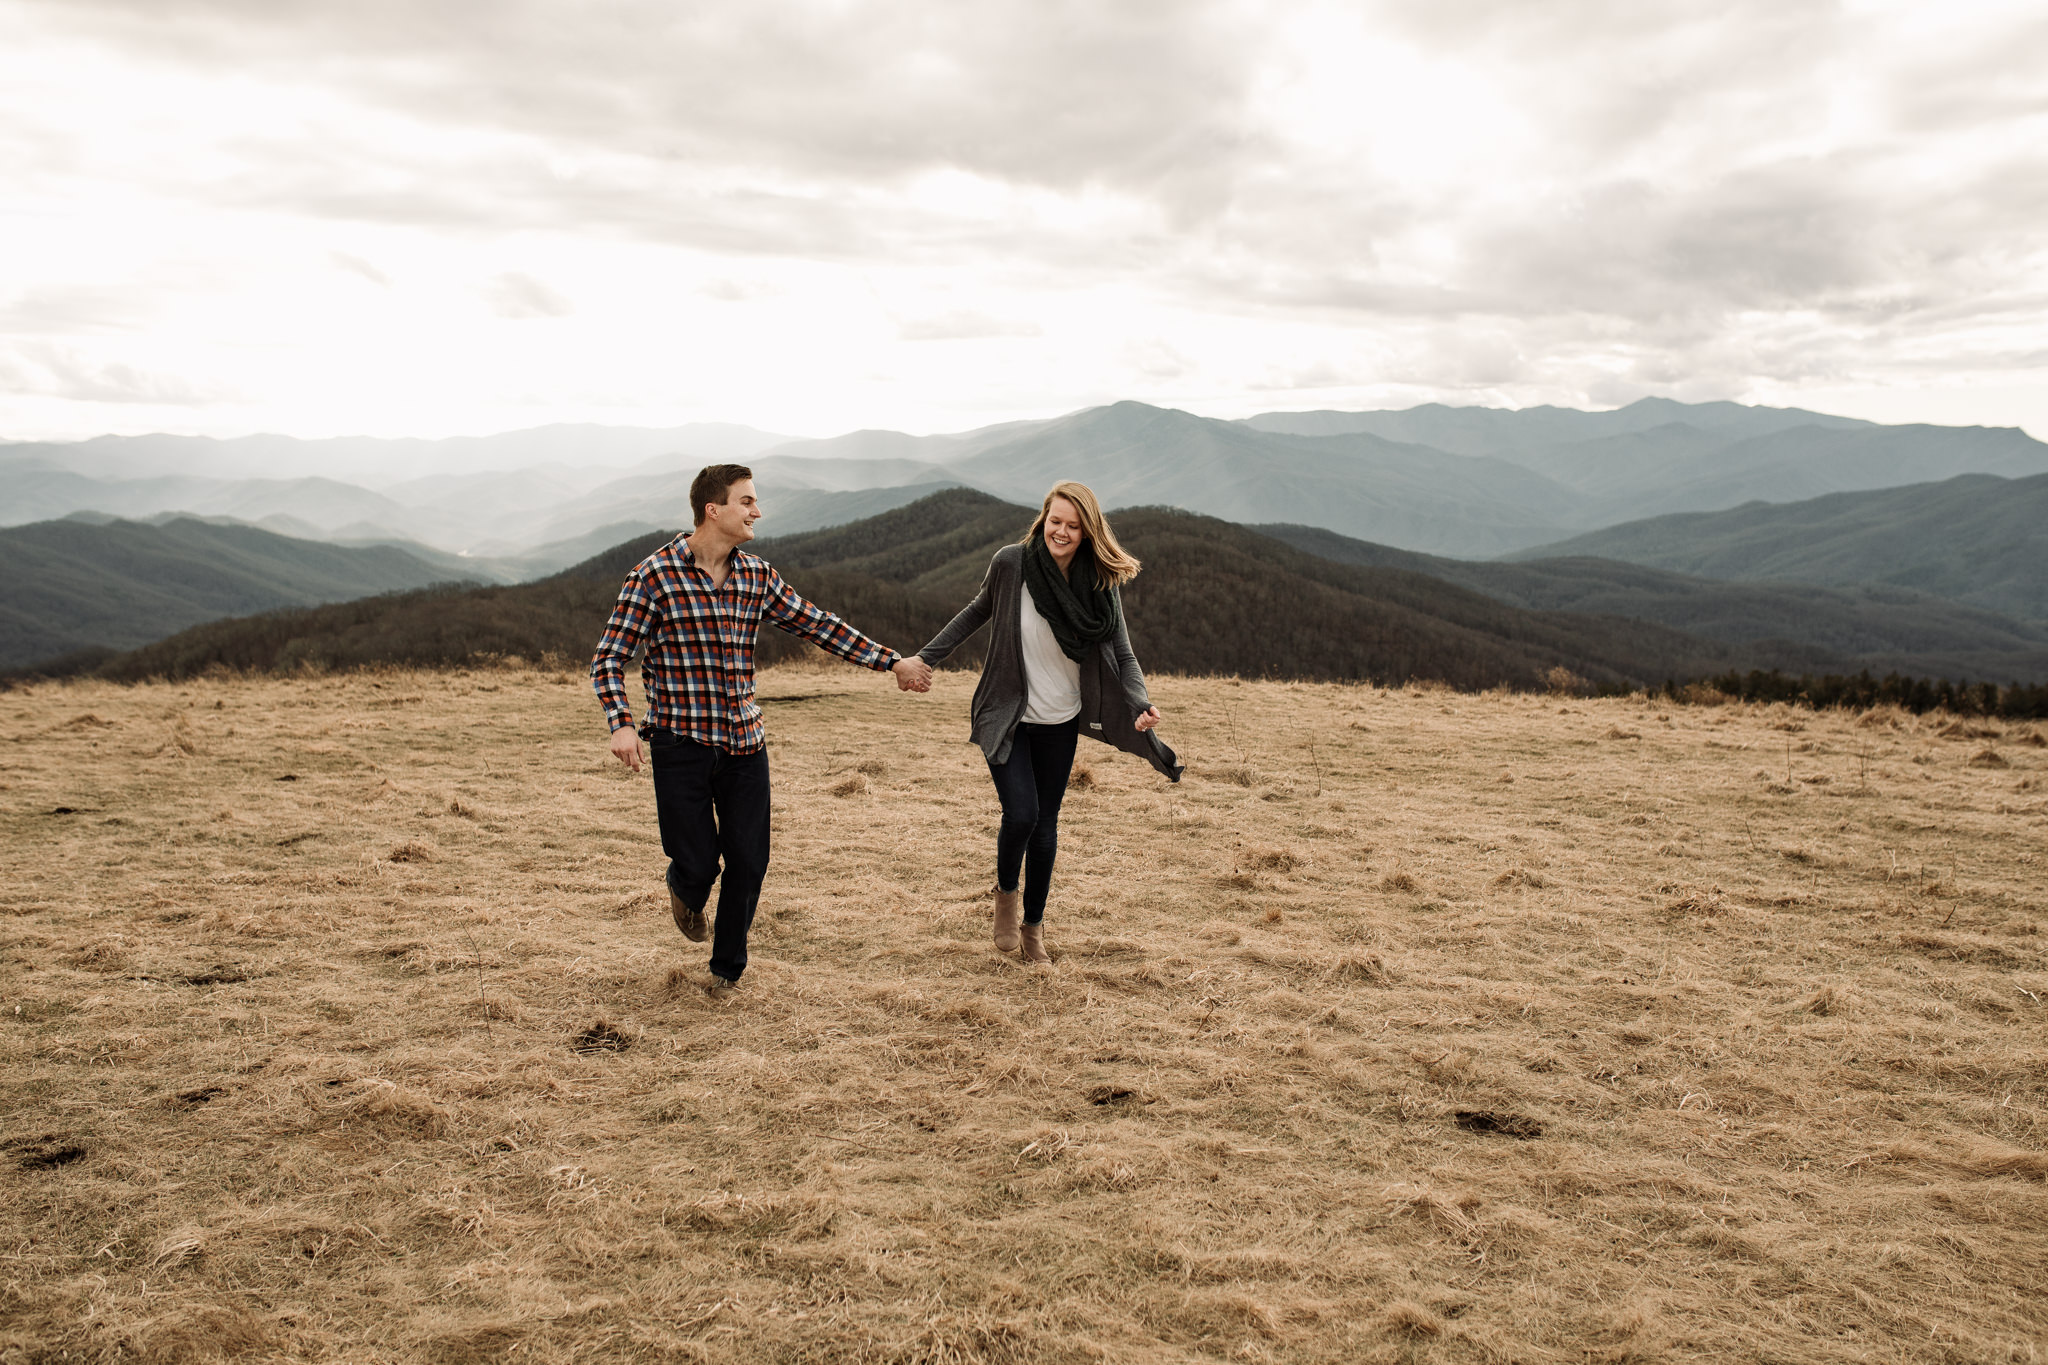 max-patch-engagement-pictures-cassie-cook-photography-asheville-wedding-photographer-2.jpg